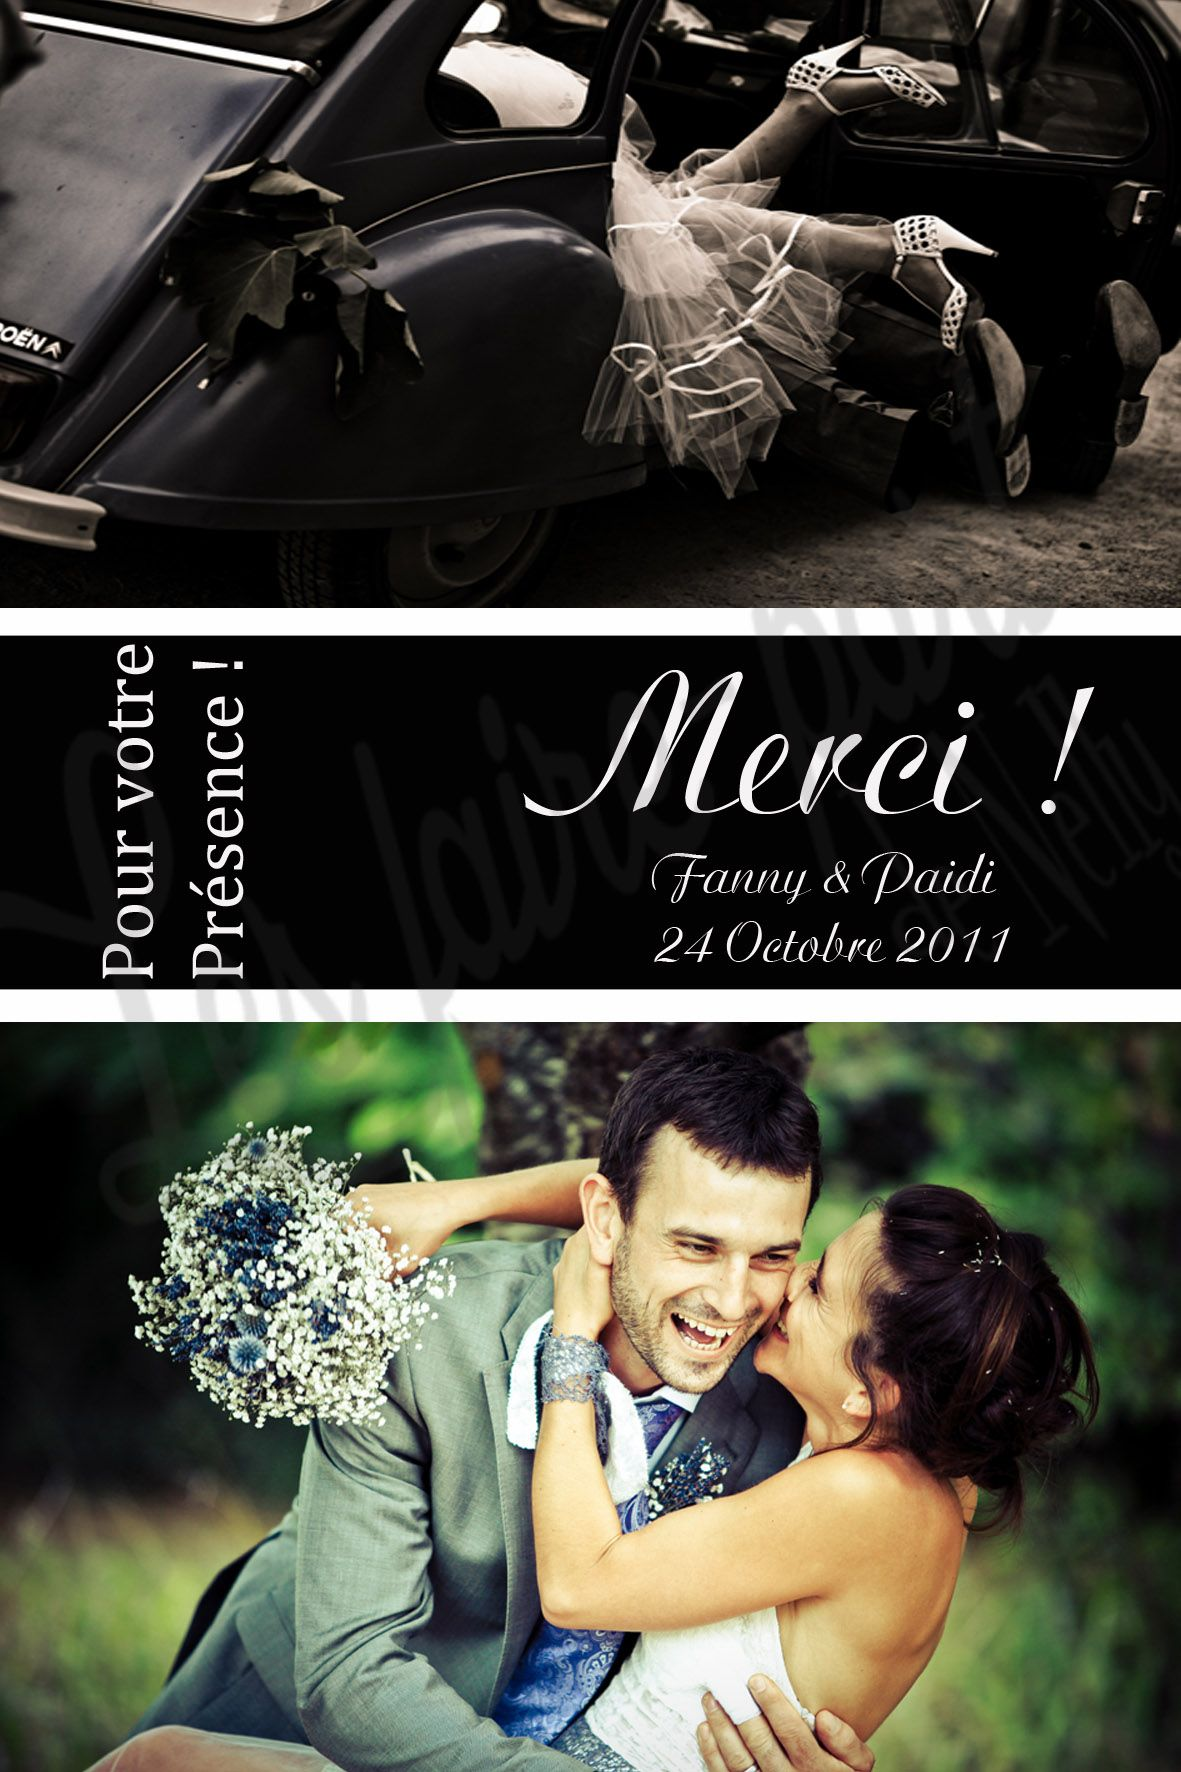 1000 images about carte remerciement mariage on pinterest virginia vineyard and mariage - Remerciement Mariage